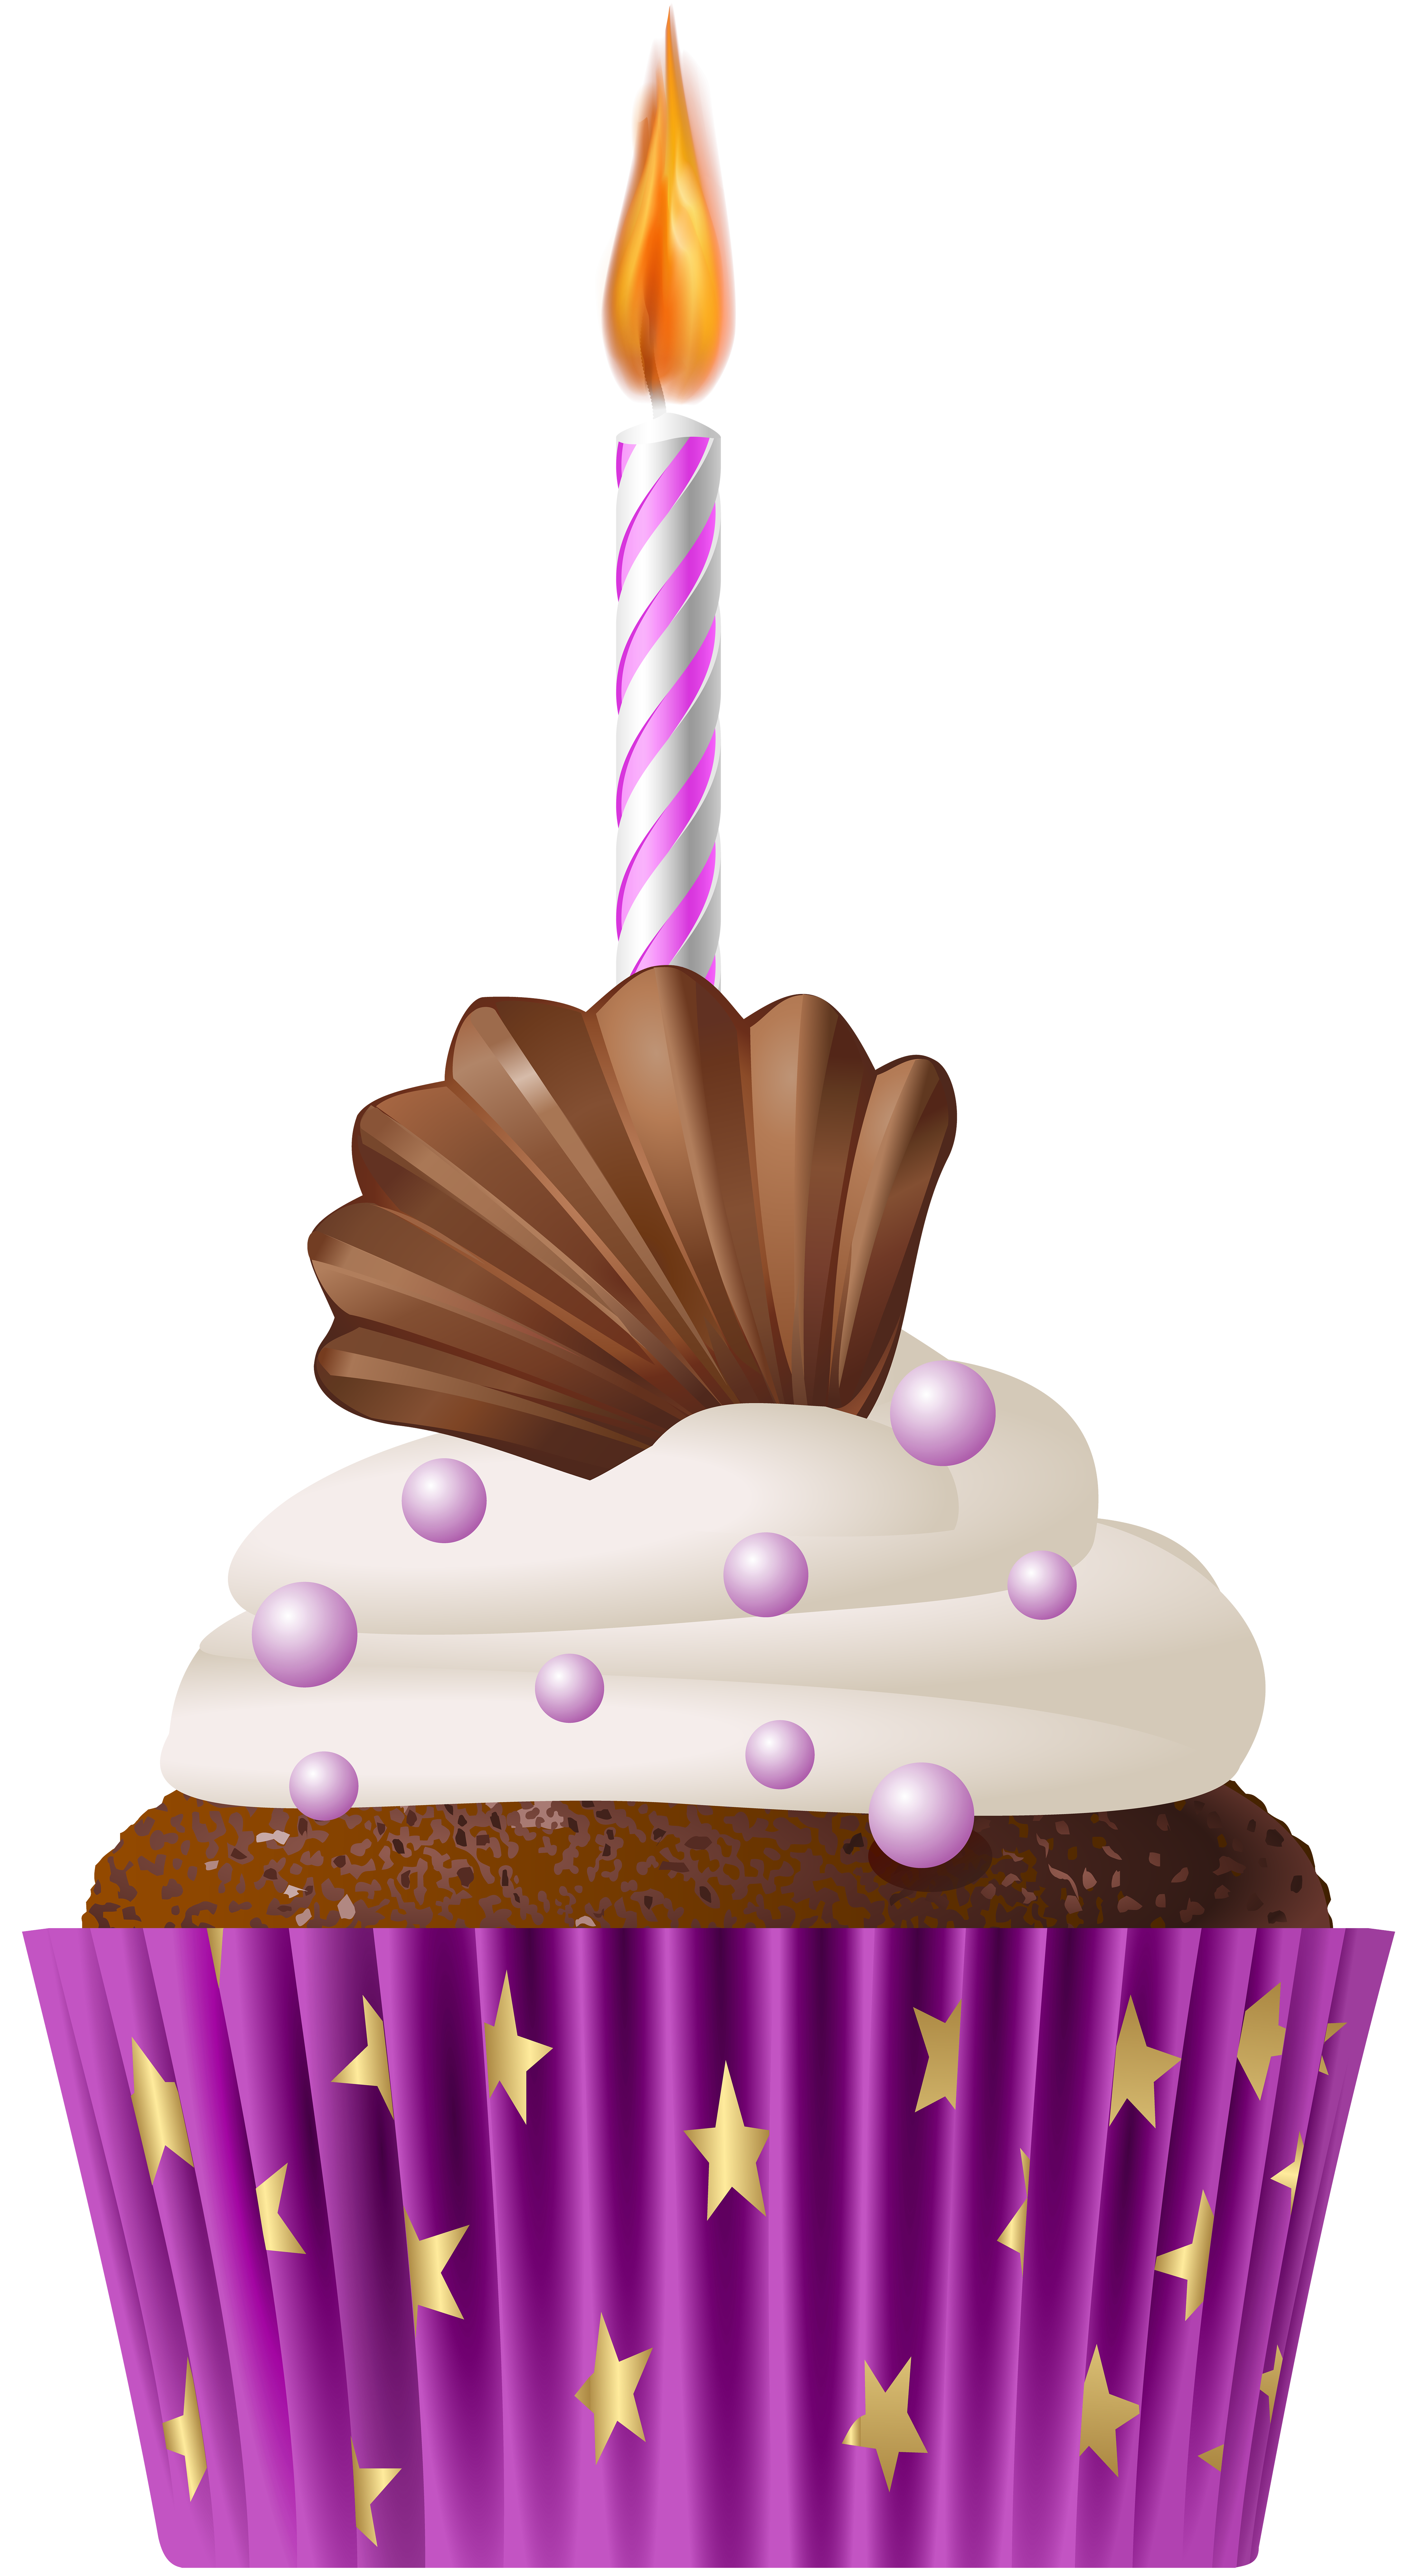 Muffin clipart cake and ice cream. Birthday pink with candle